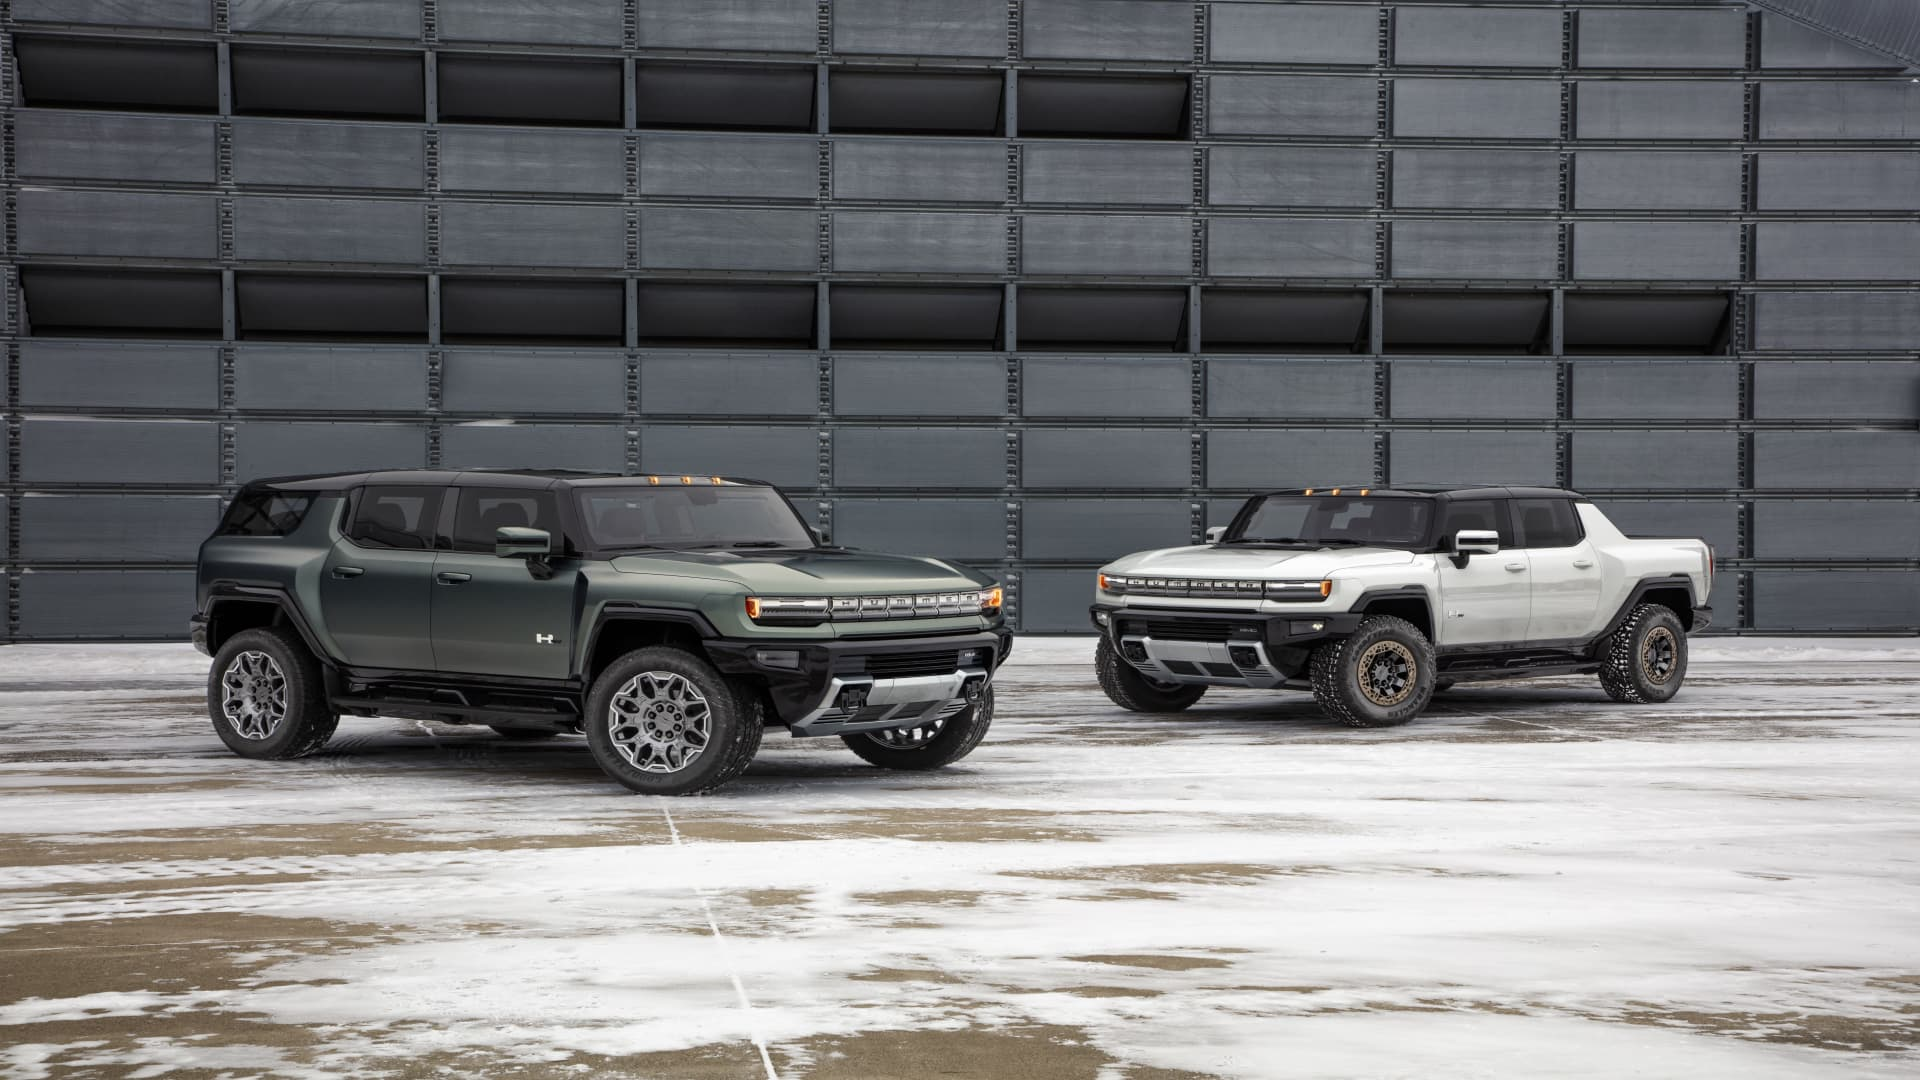 The 2024 GMC Hummer EV SUV and 2022 GMC Hummer EV sport utility truck, or SUT.